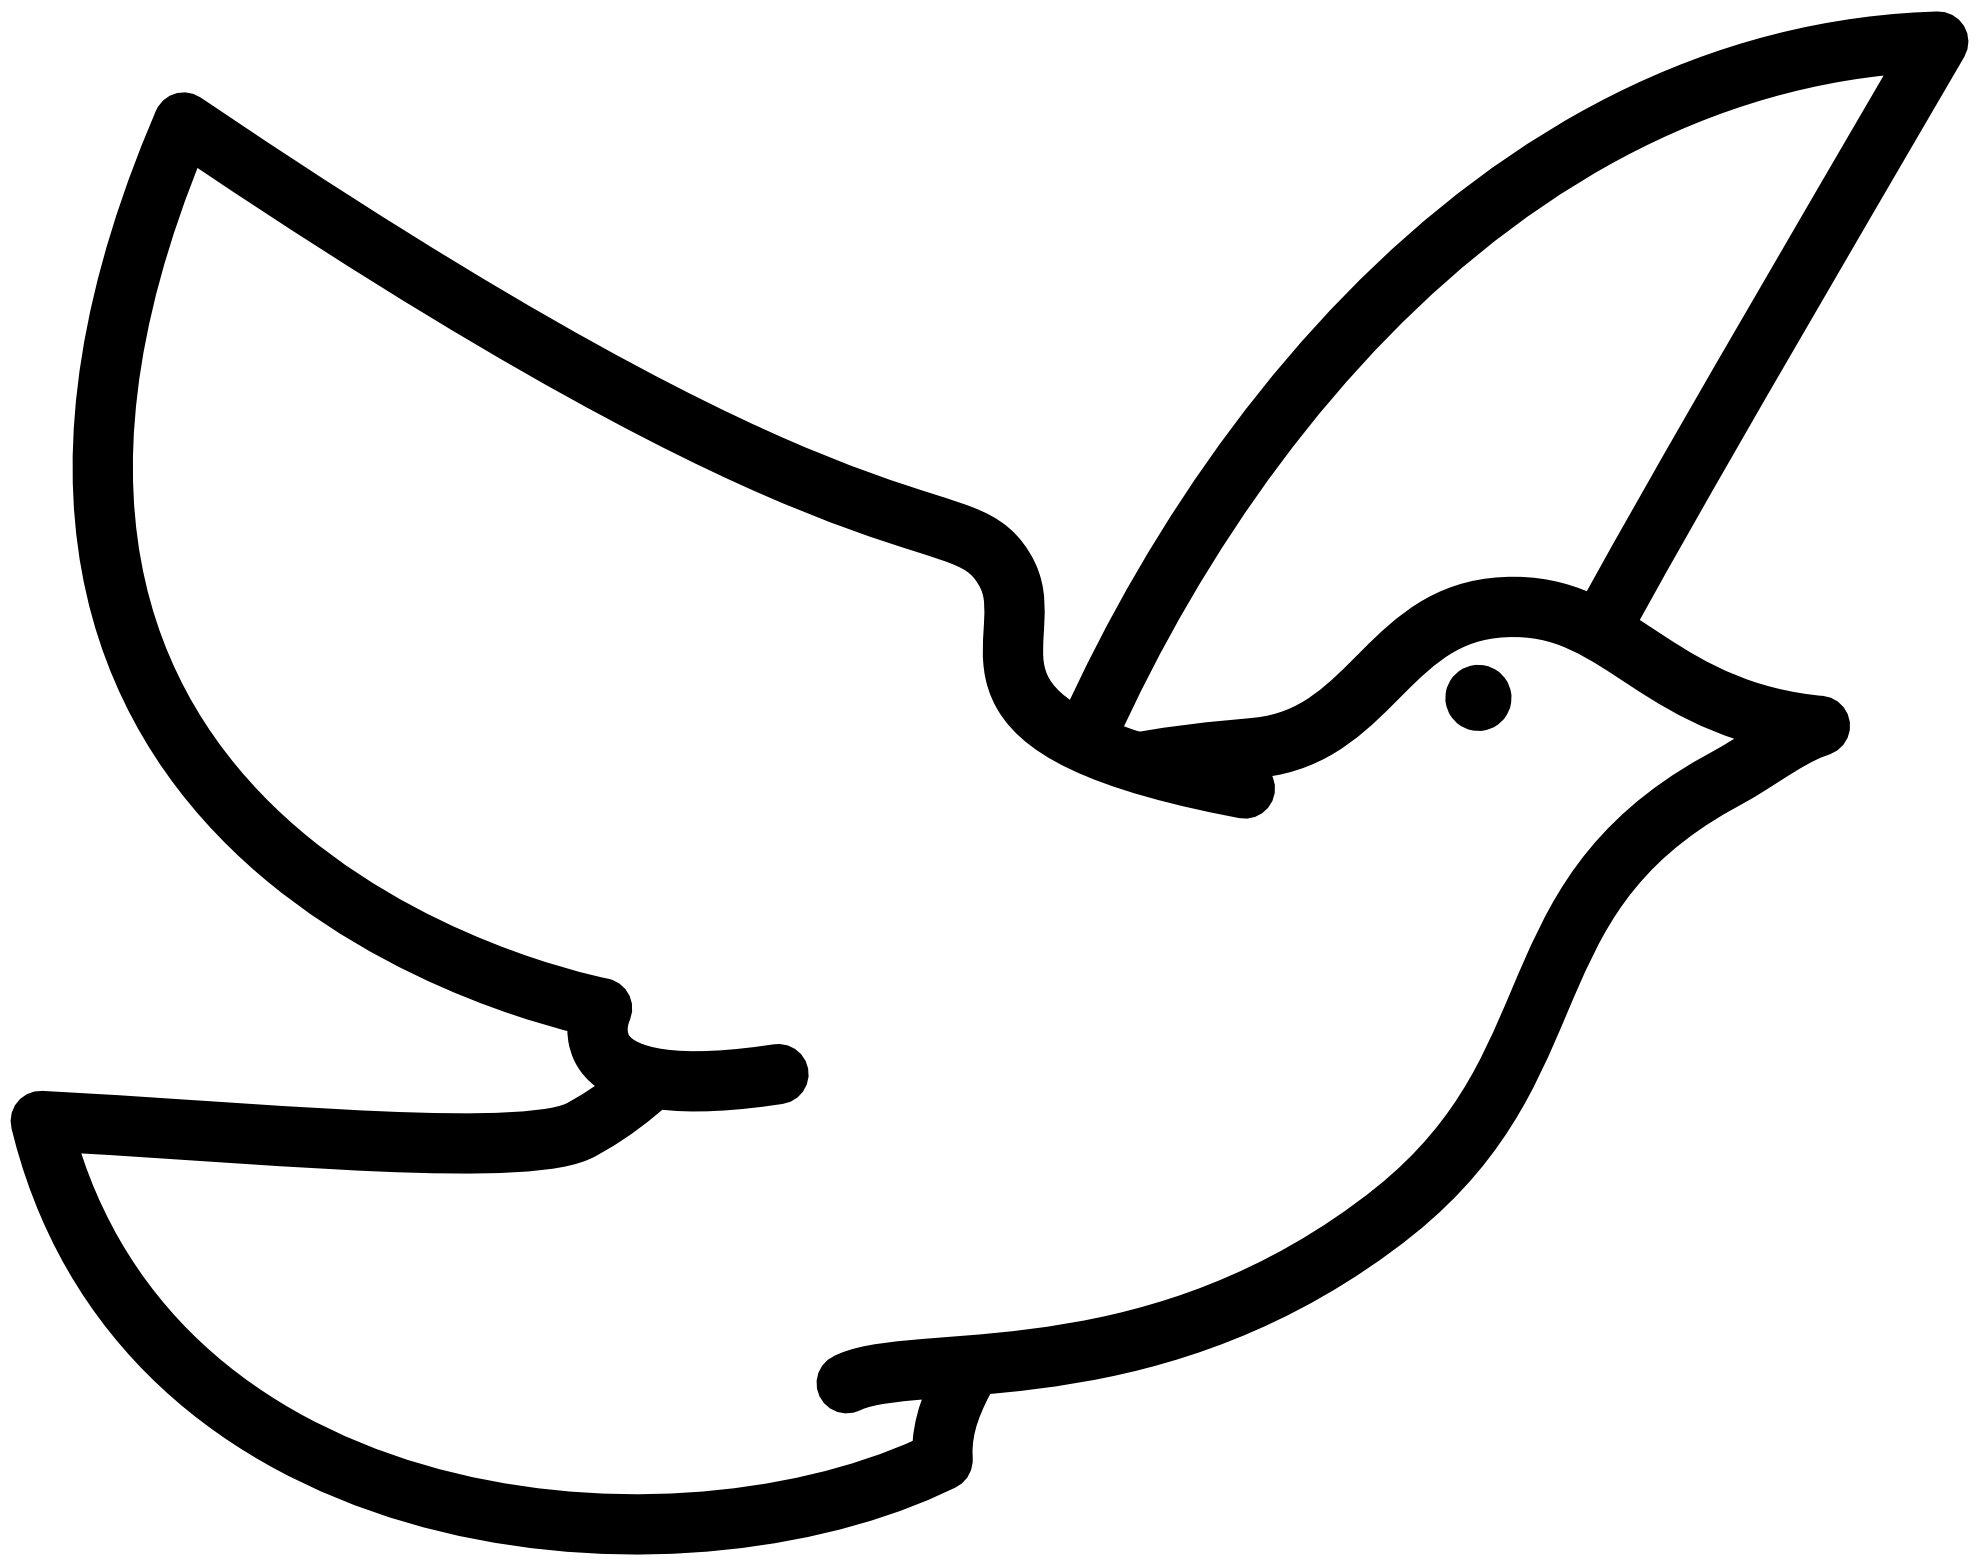 Fly clipart simple. Holy spirit dove black